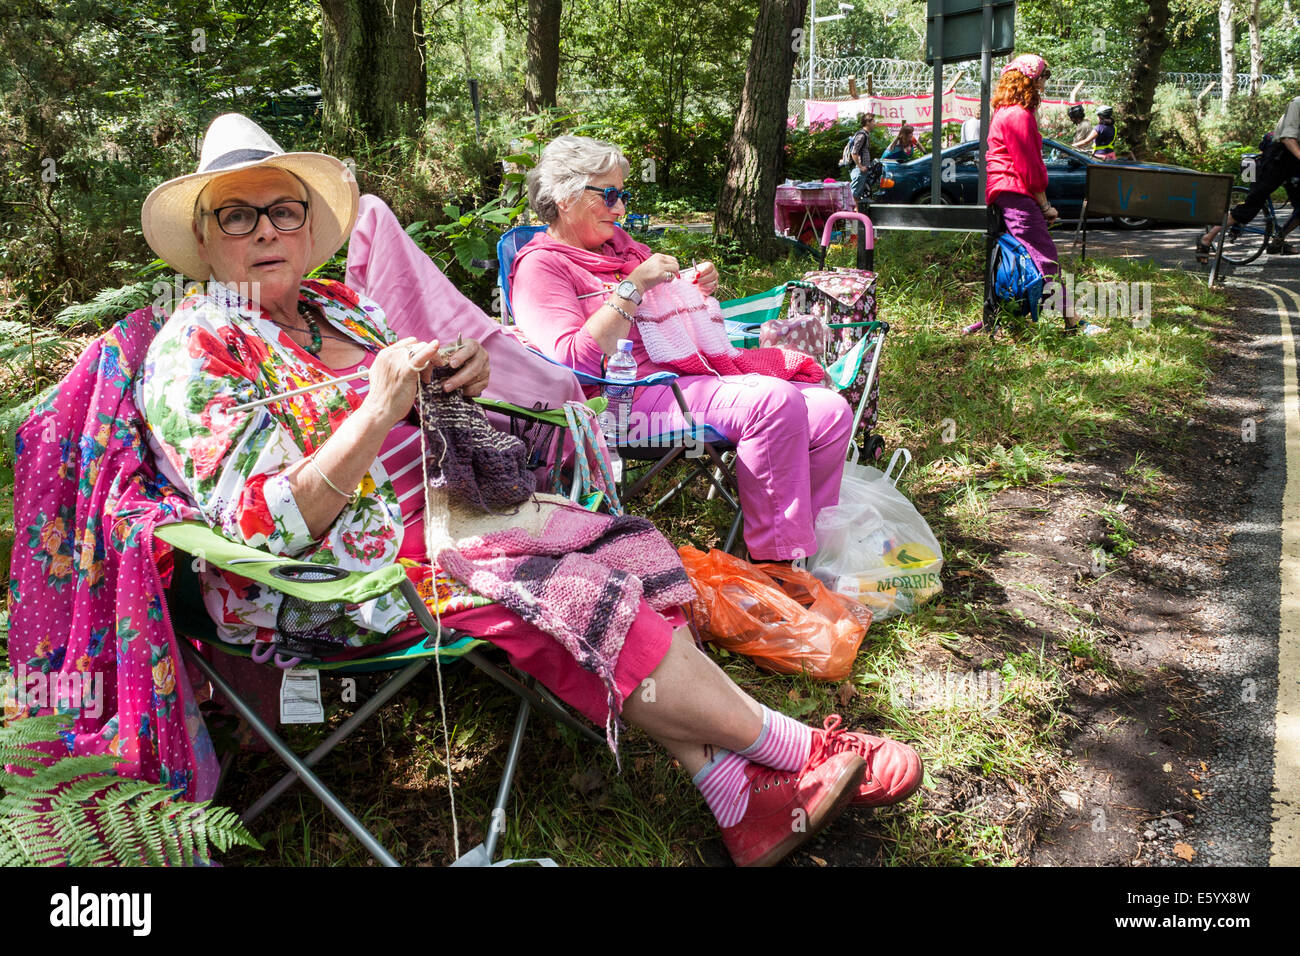 Aldermaston, Berkshire, England, GB, UK. 9th August 2014. A 7 mile (11km) long hand-knitted 'scarf' was unrolled Stock Photo